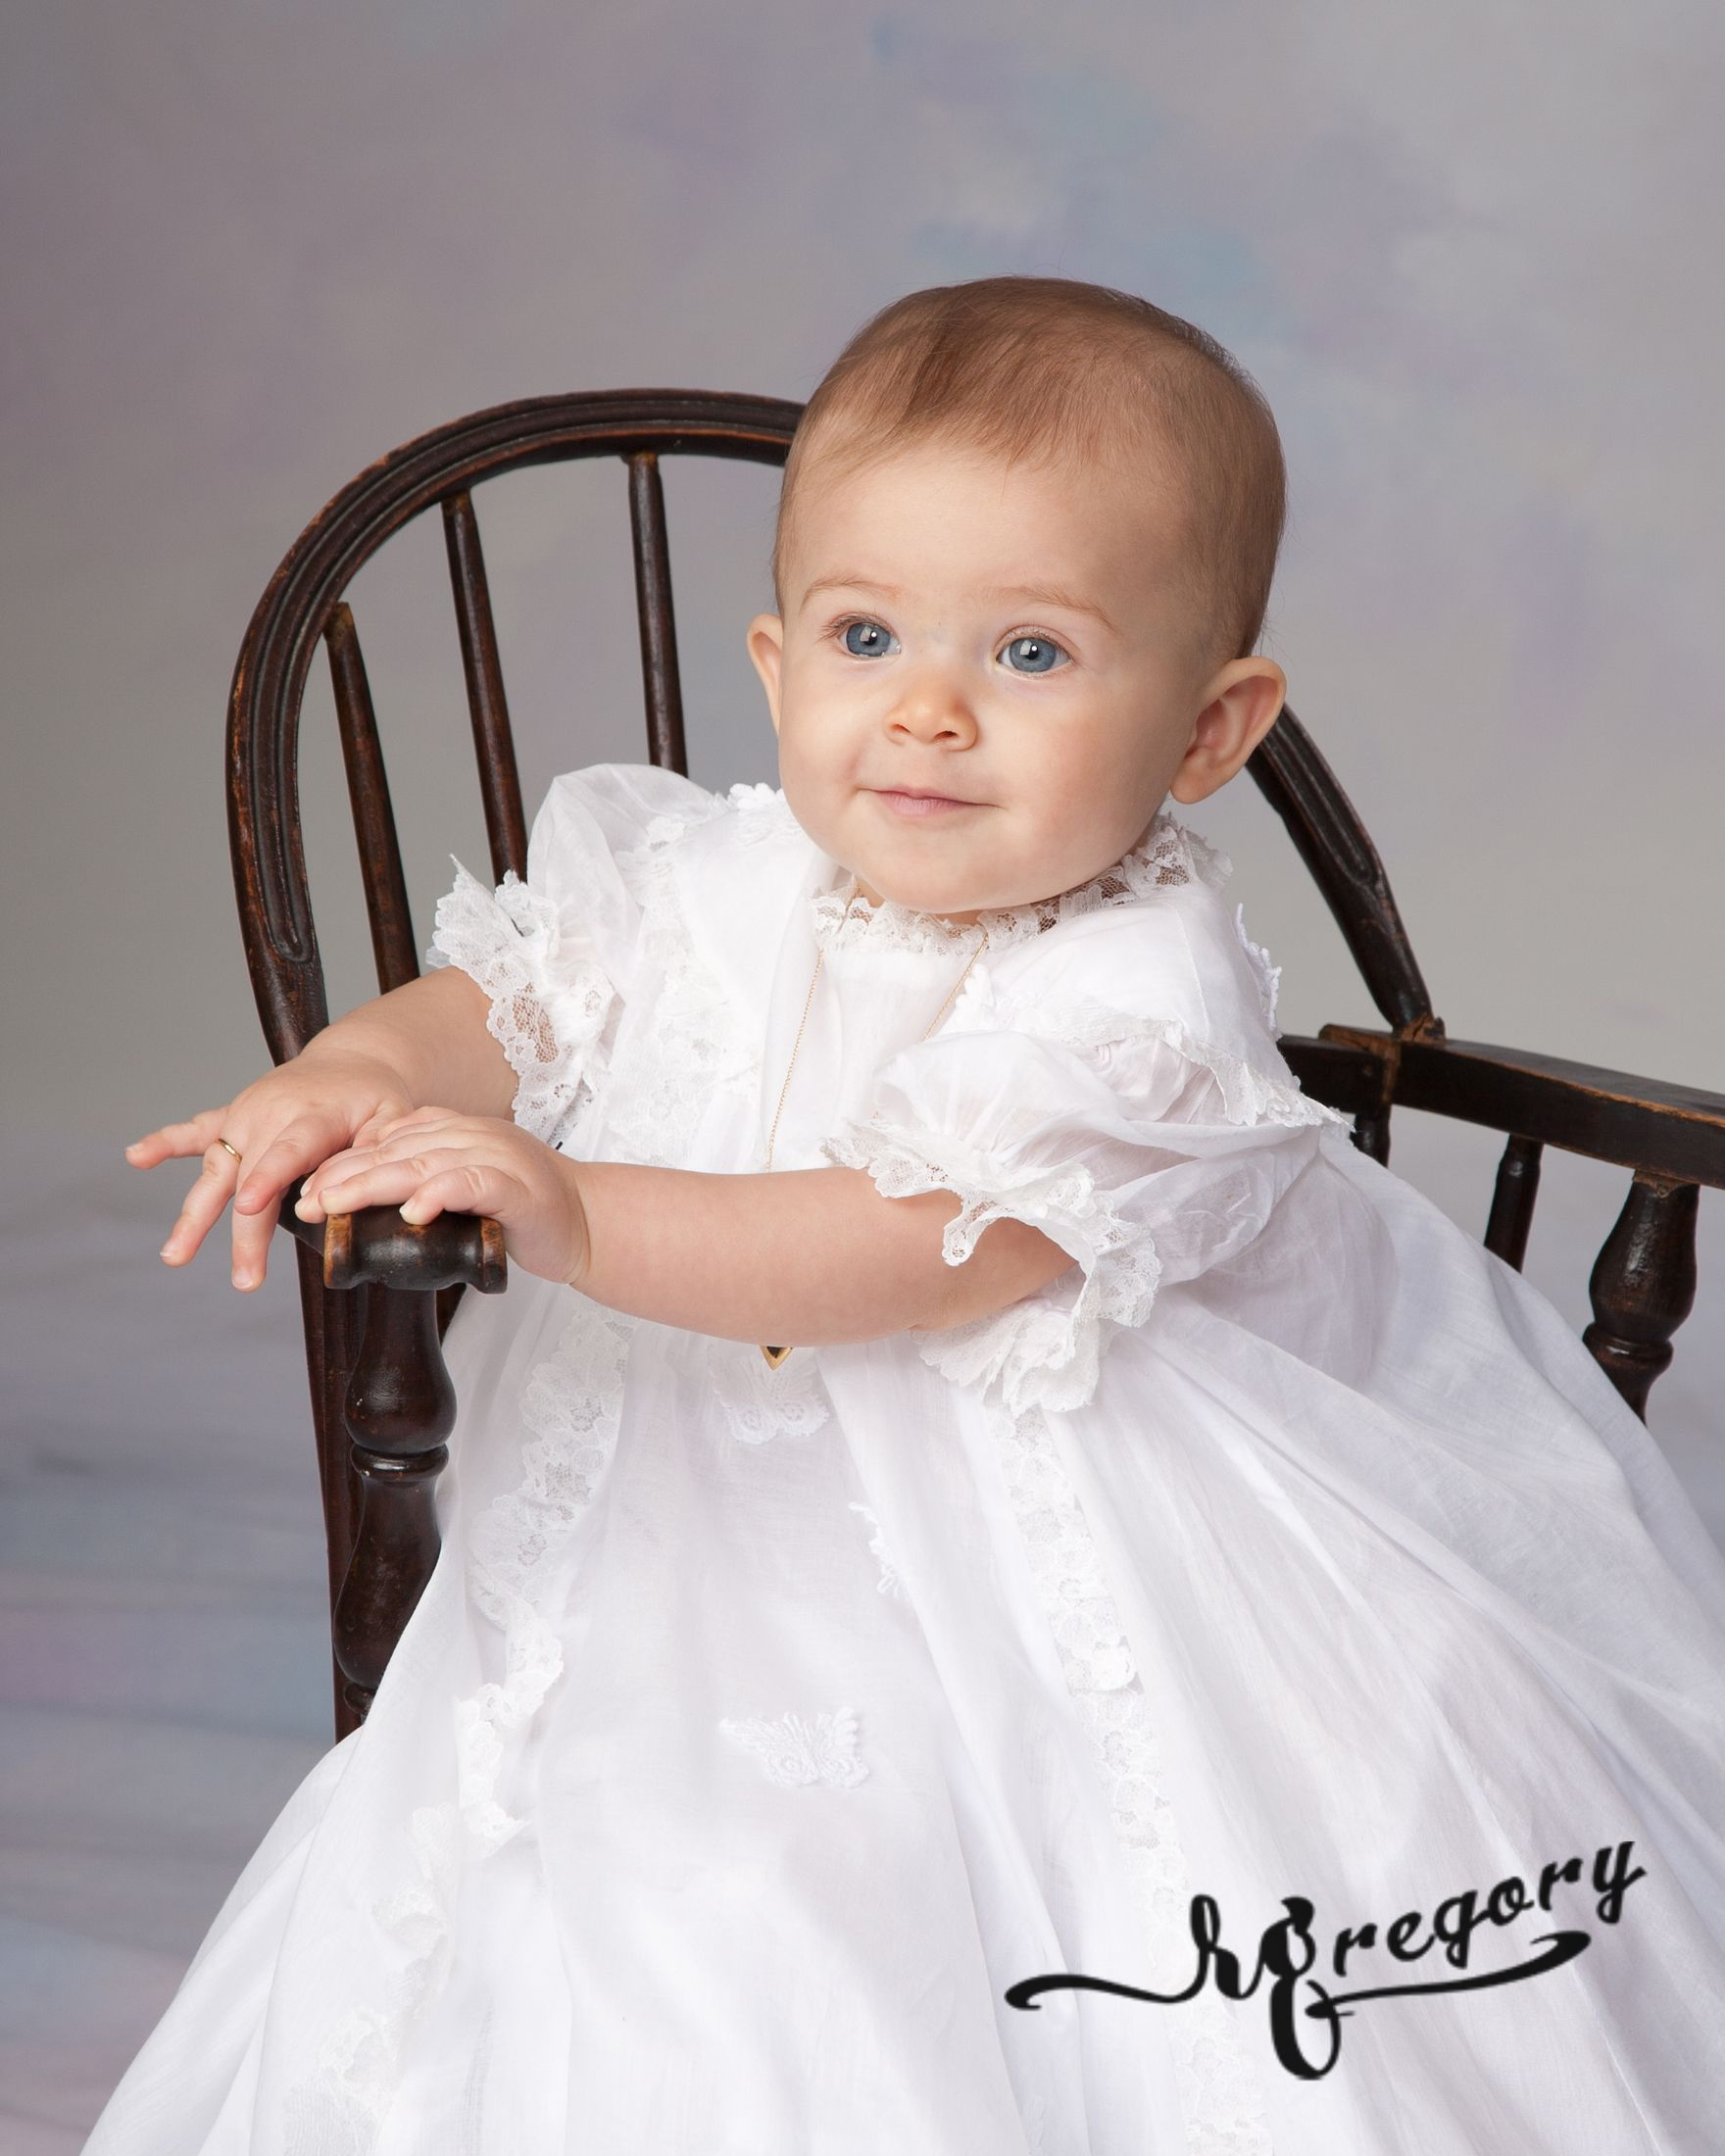 baby girl in chair child photograph